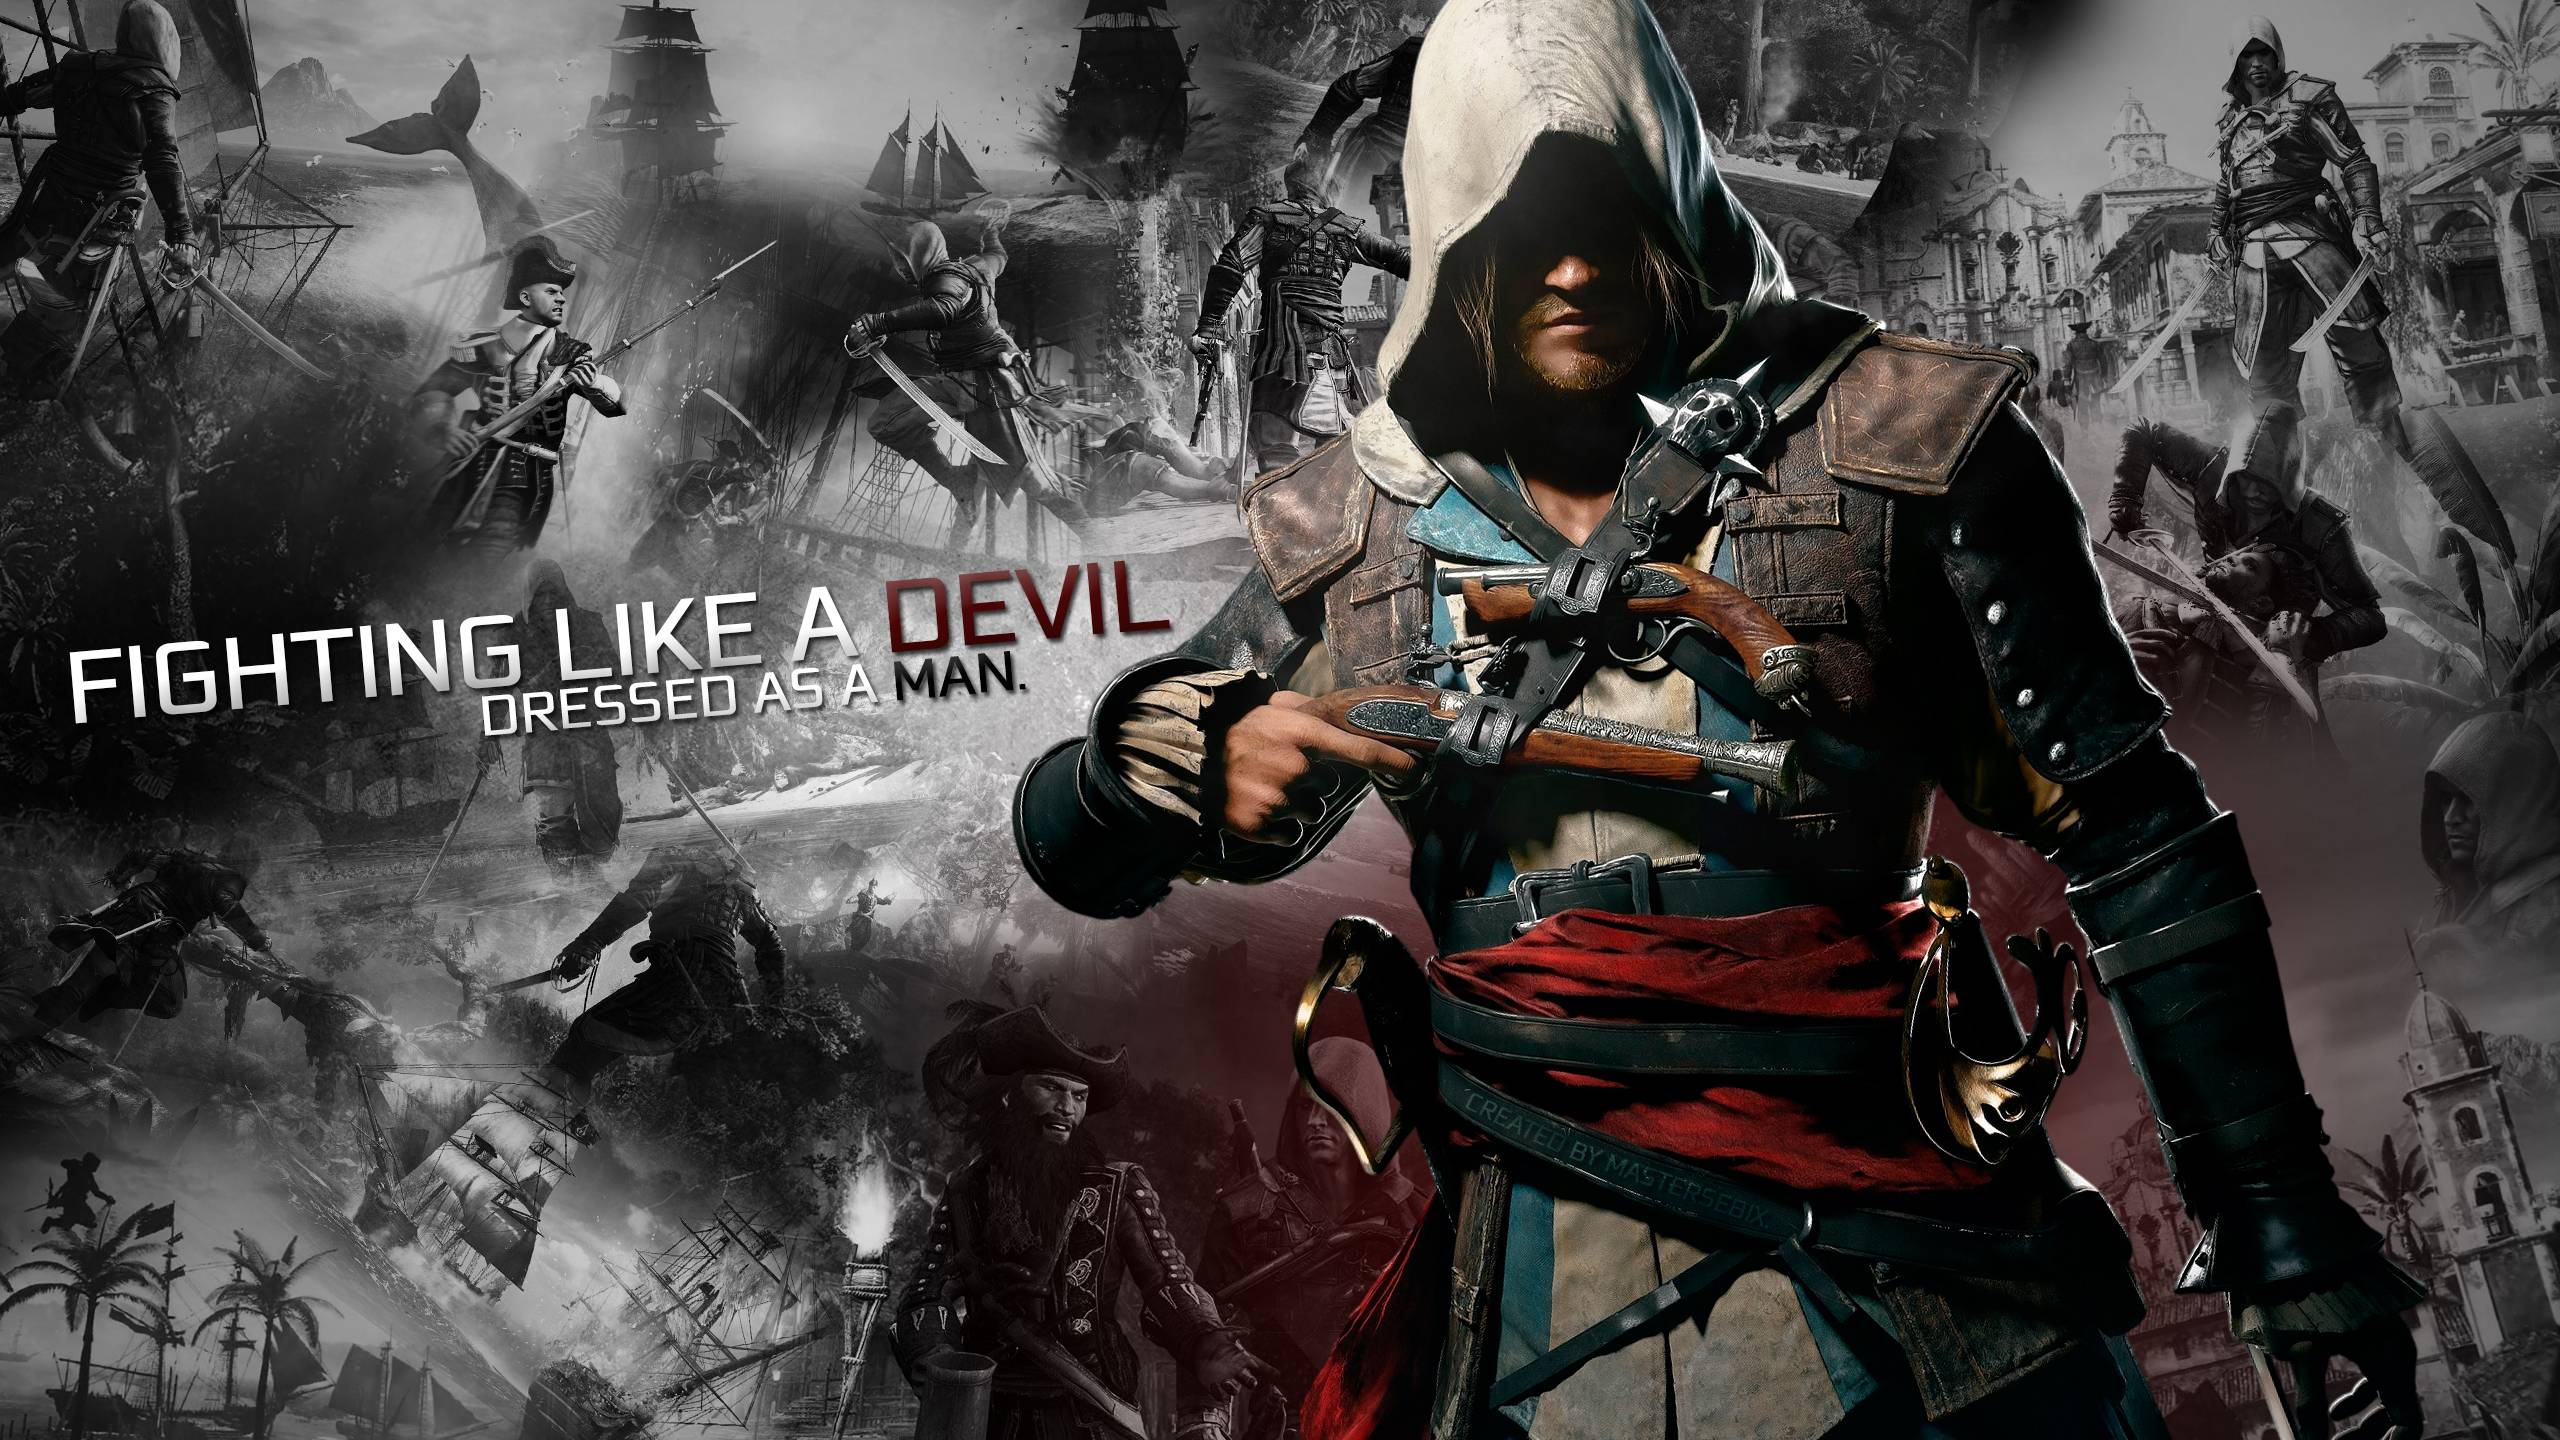 assassins creed 4 black flag wallpaper in hd